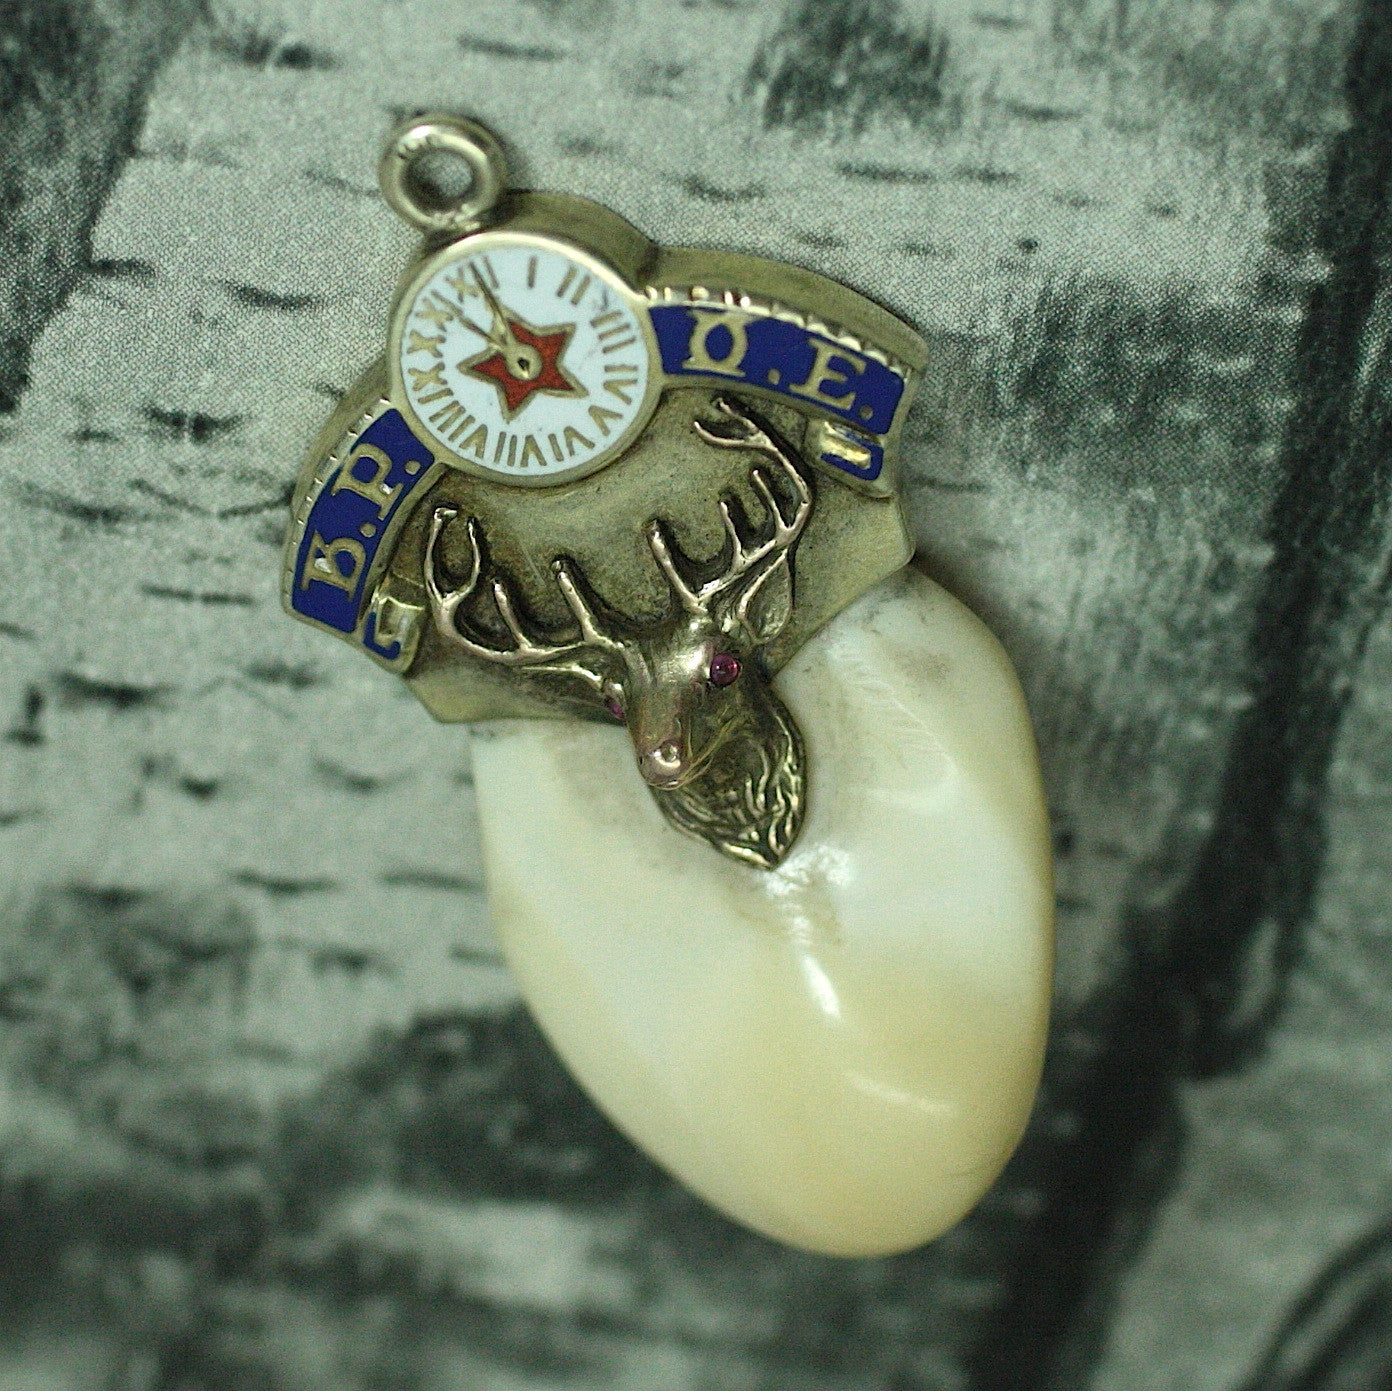 Circa 1900 14K Elks Club Tooth Fob